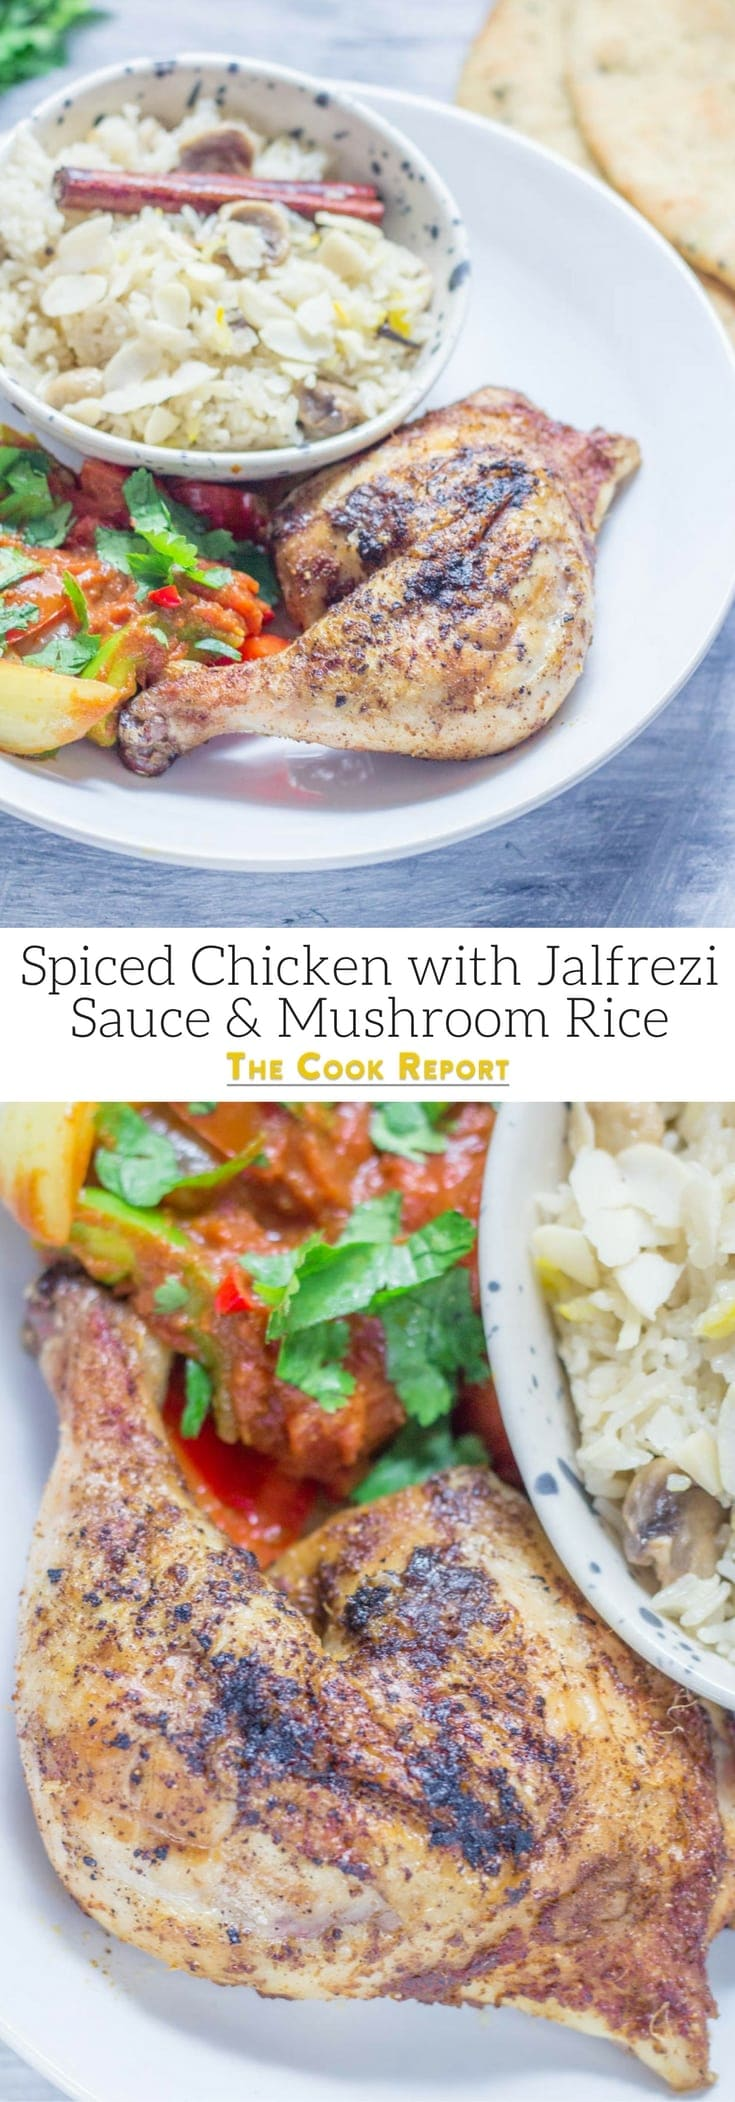 This spiced chicken is a fun way to mix up your roast dinner! Serve with a spicy jalfrezi sauce and a helping of mushroom rice to warm you up this winter. #chicken #dinner #indianfood #jalfrezi #roastdinner